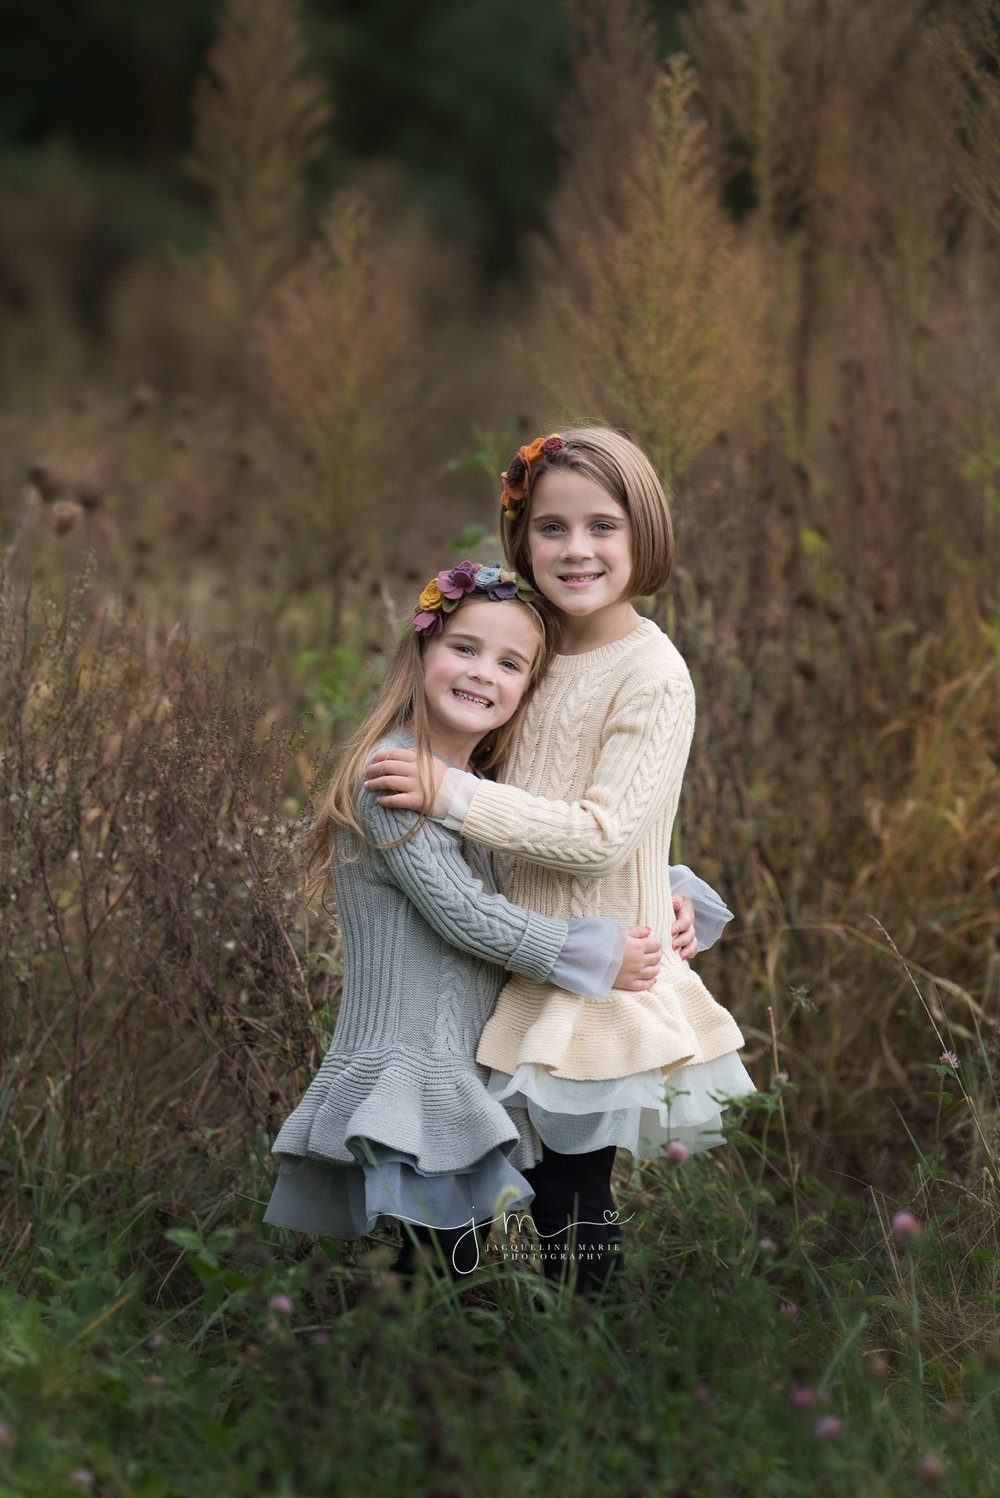 best family photographer in columbus ohio features image of sisters hugging in a fall field of tall grass